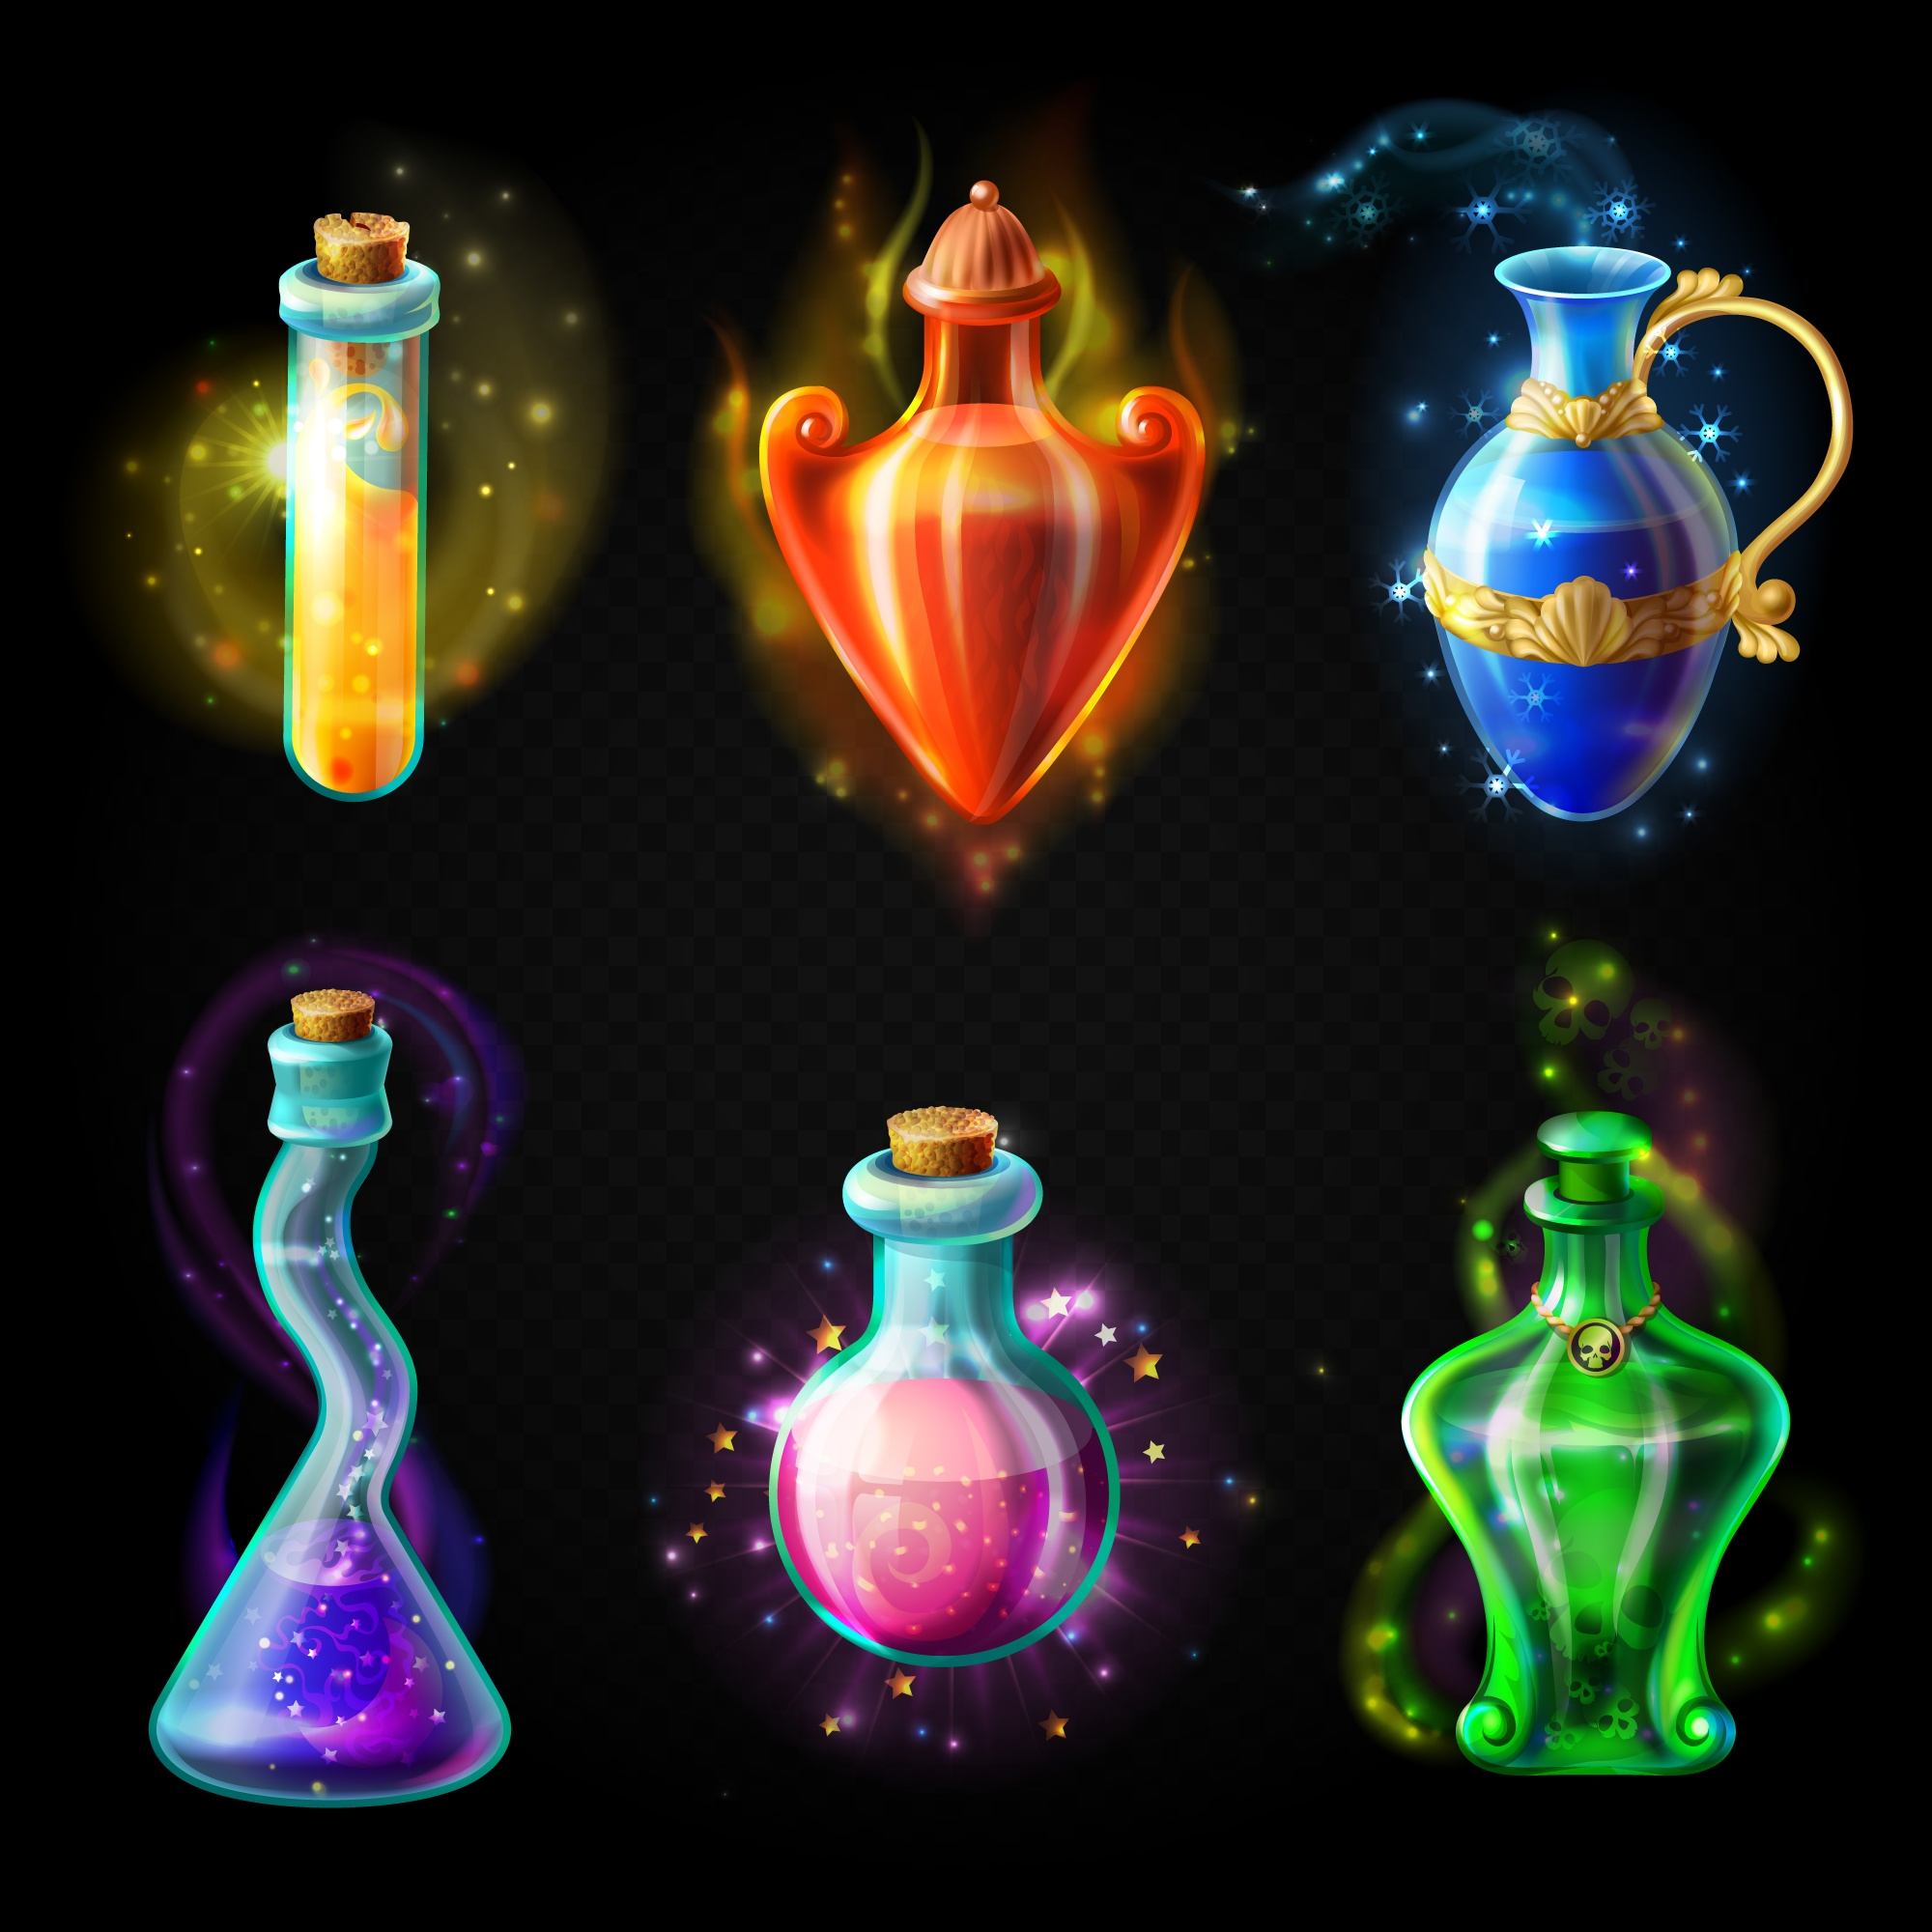 Glass bottles with a magical potion